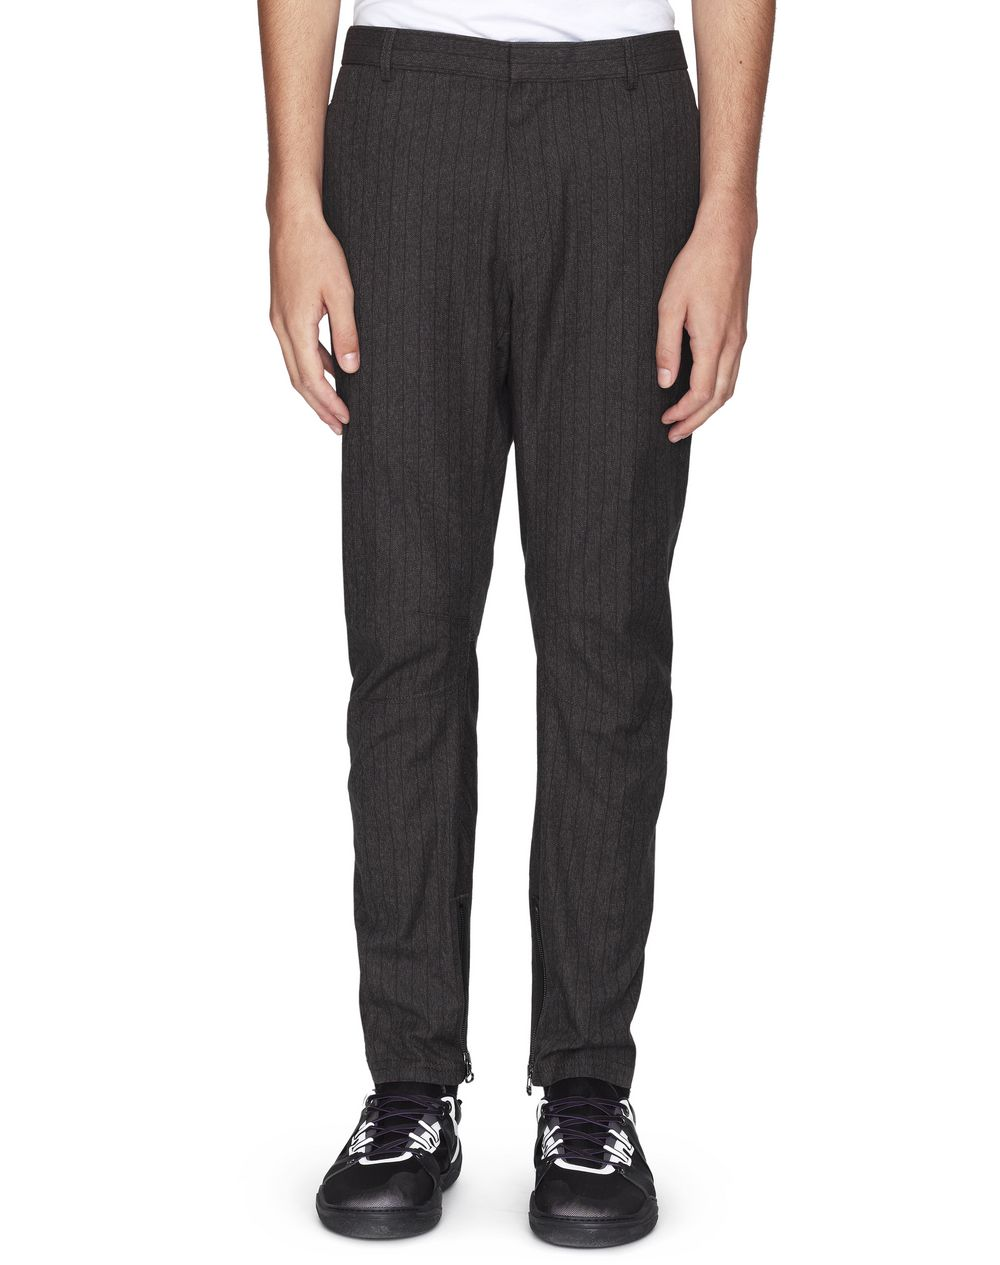 ANTHRACITE COTTON BIKER PANTS - Lanvin